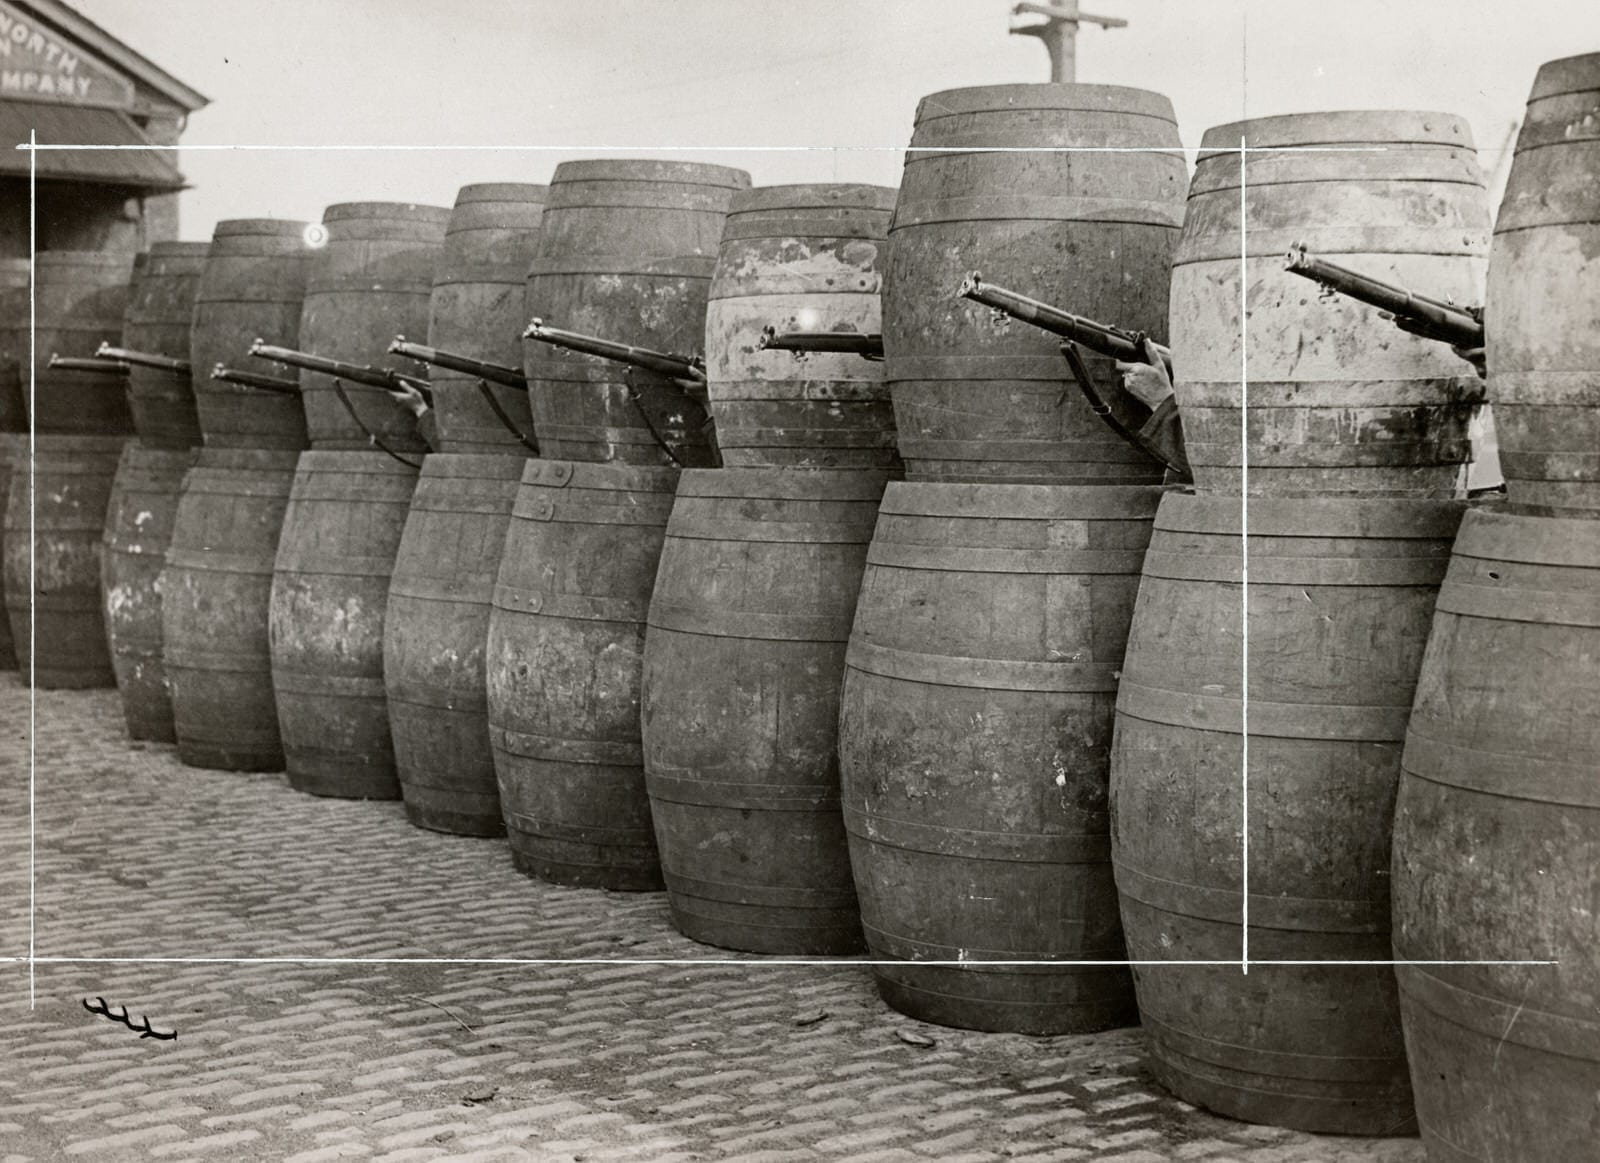 Barricade made from barrels, 1916